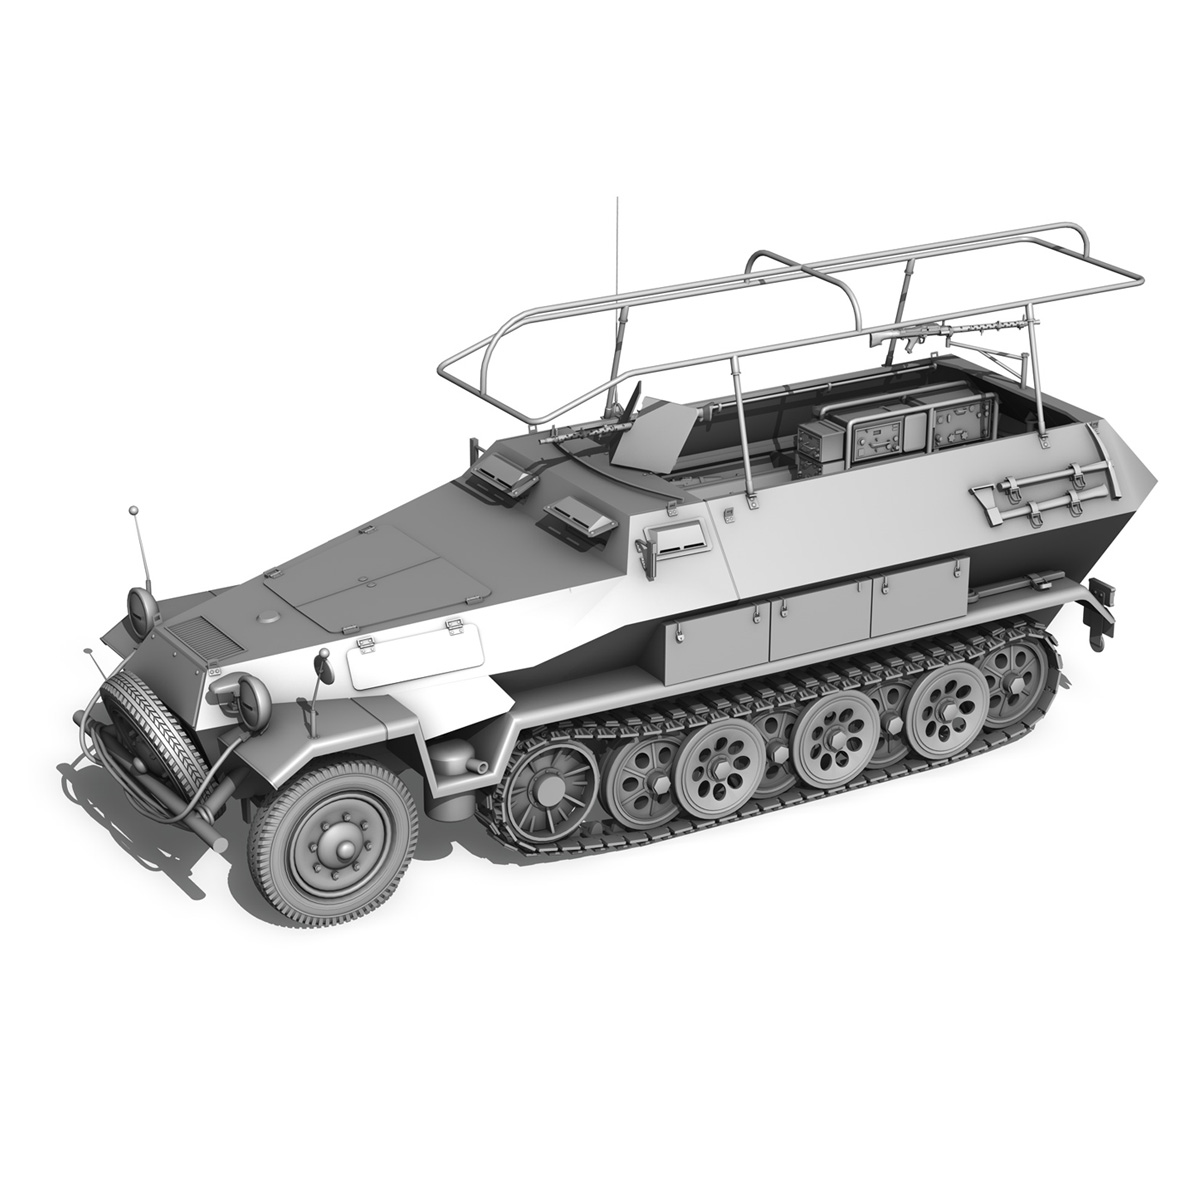 sd.kfz 251 ausf b – communications vehicle – 8pd 3d model 3ds fbx lwo lw lws obj c4d 292035